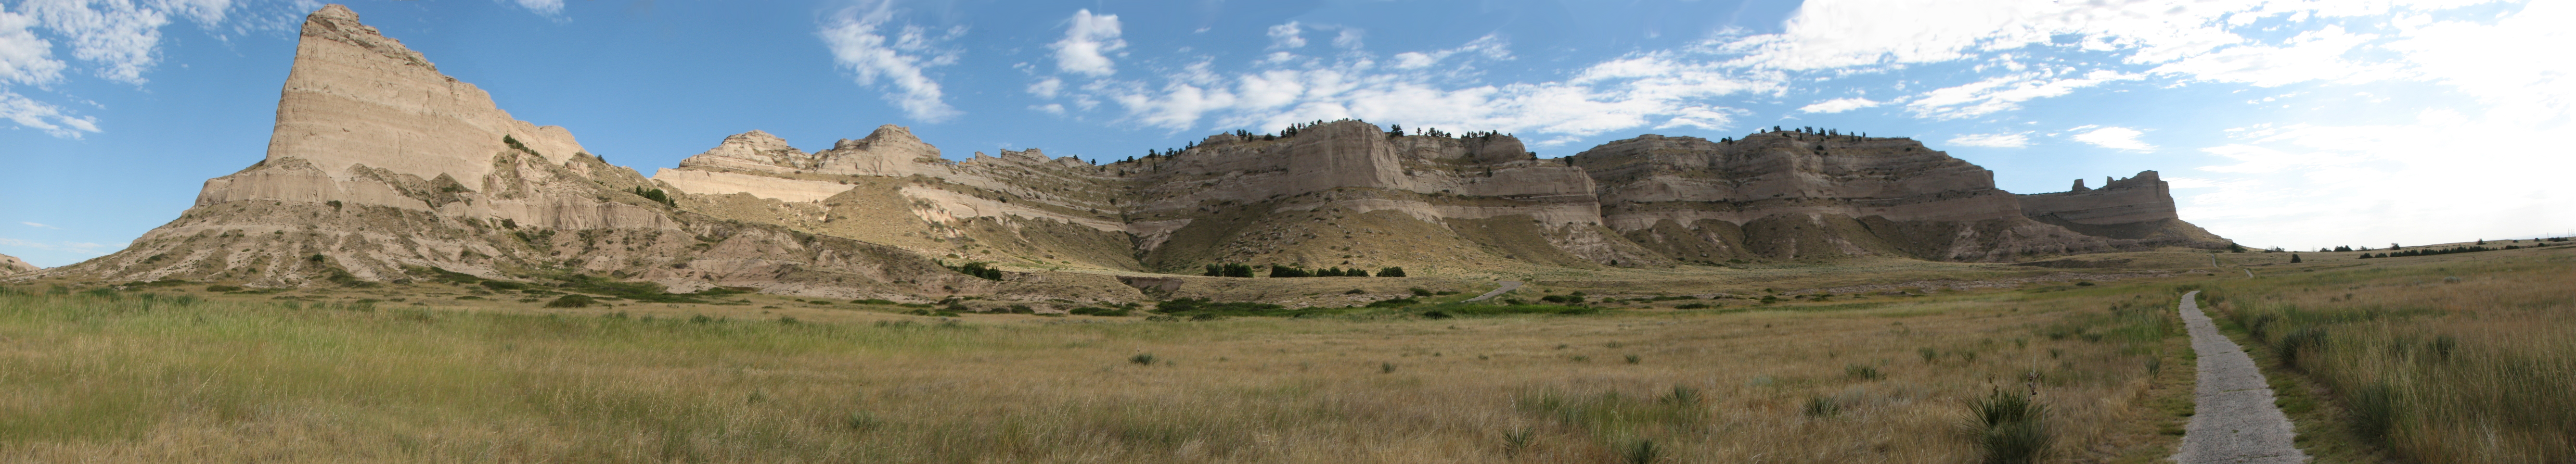 filescottsbluff panoramajpg wikimedia commons